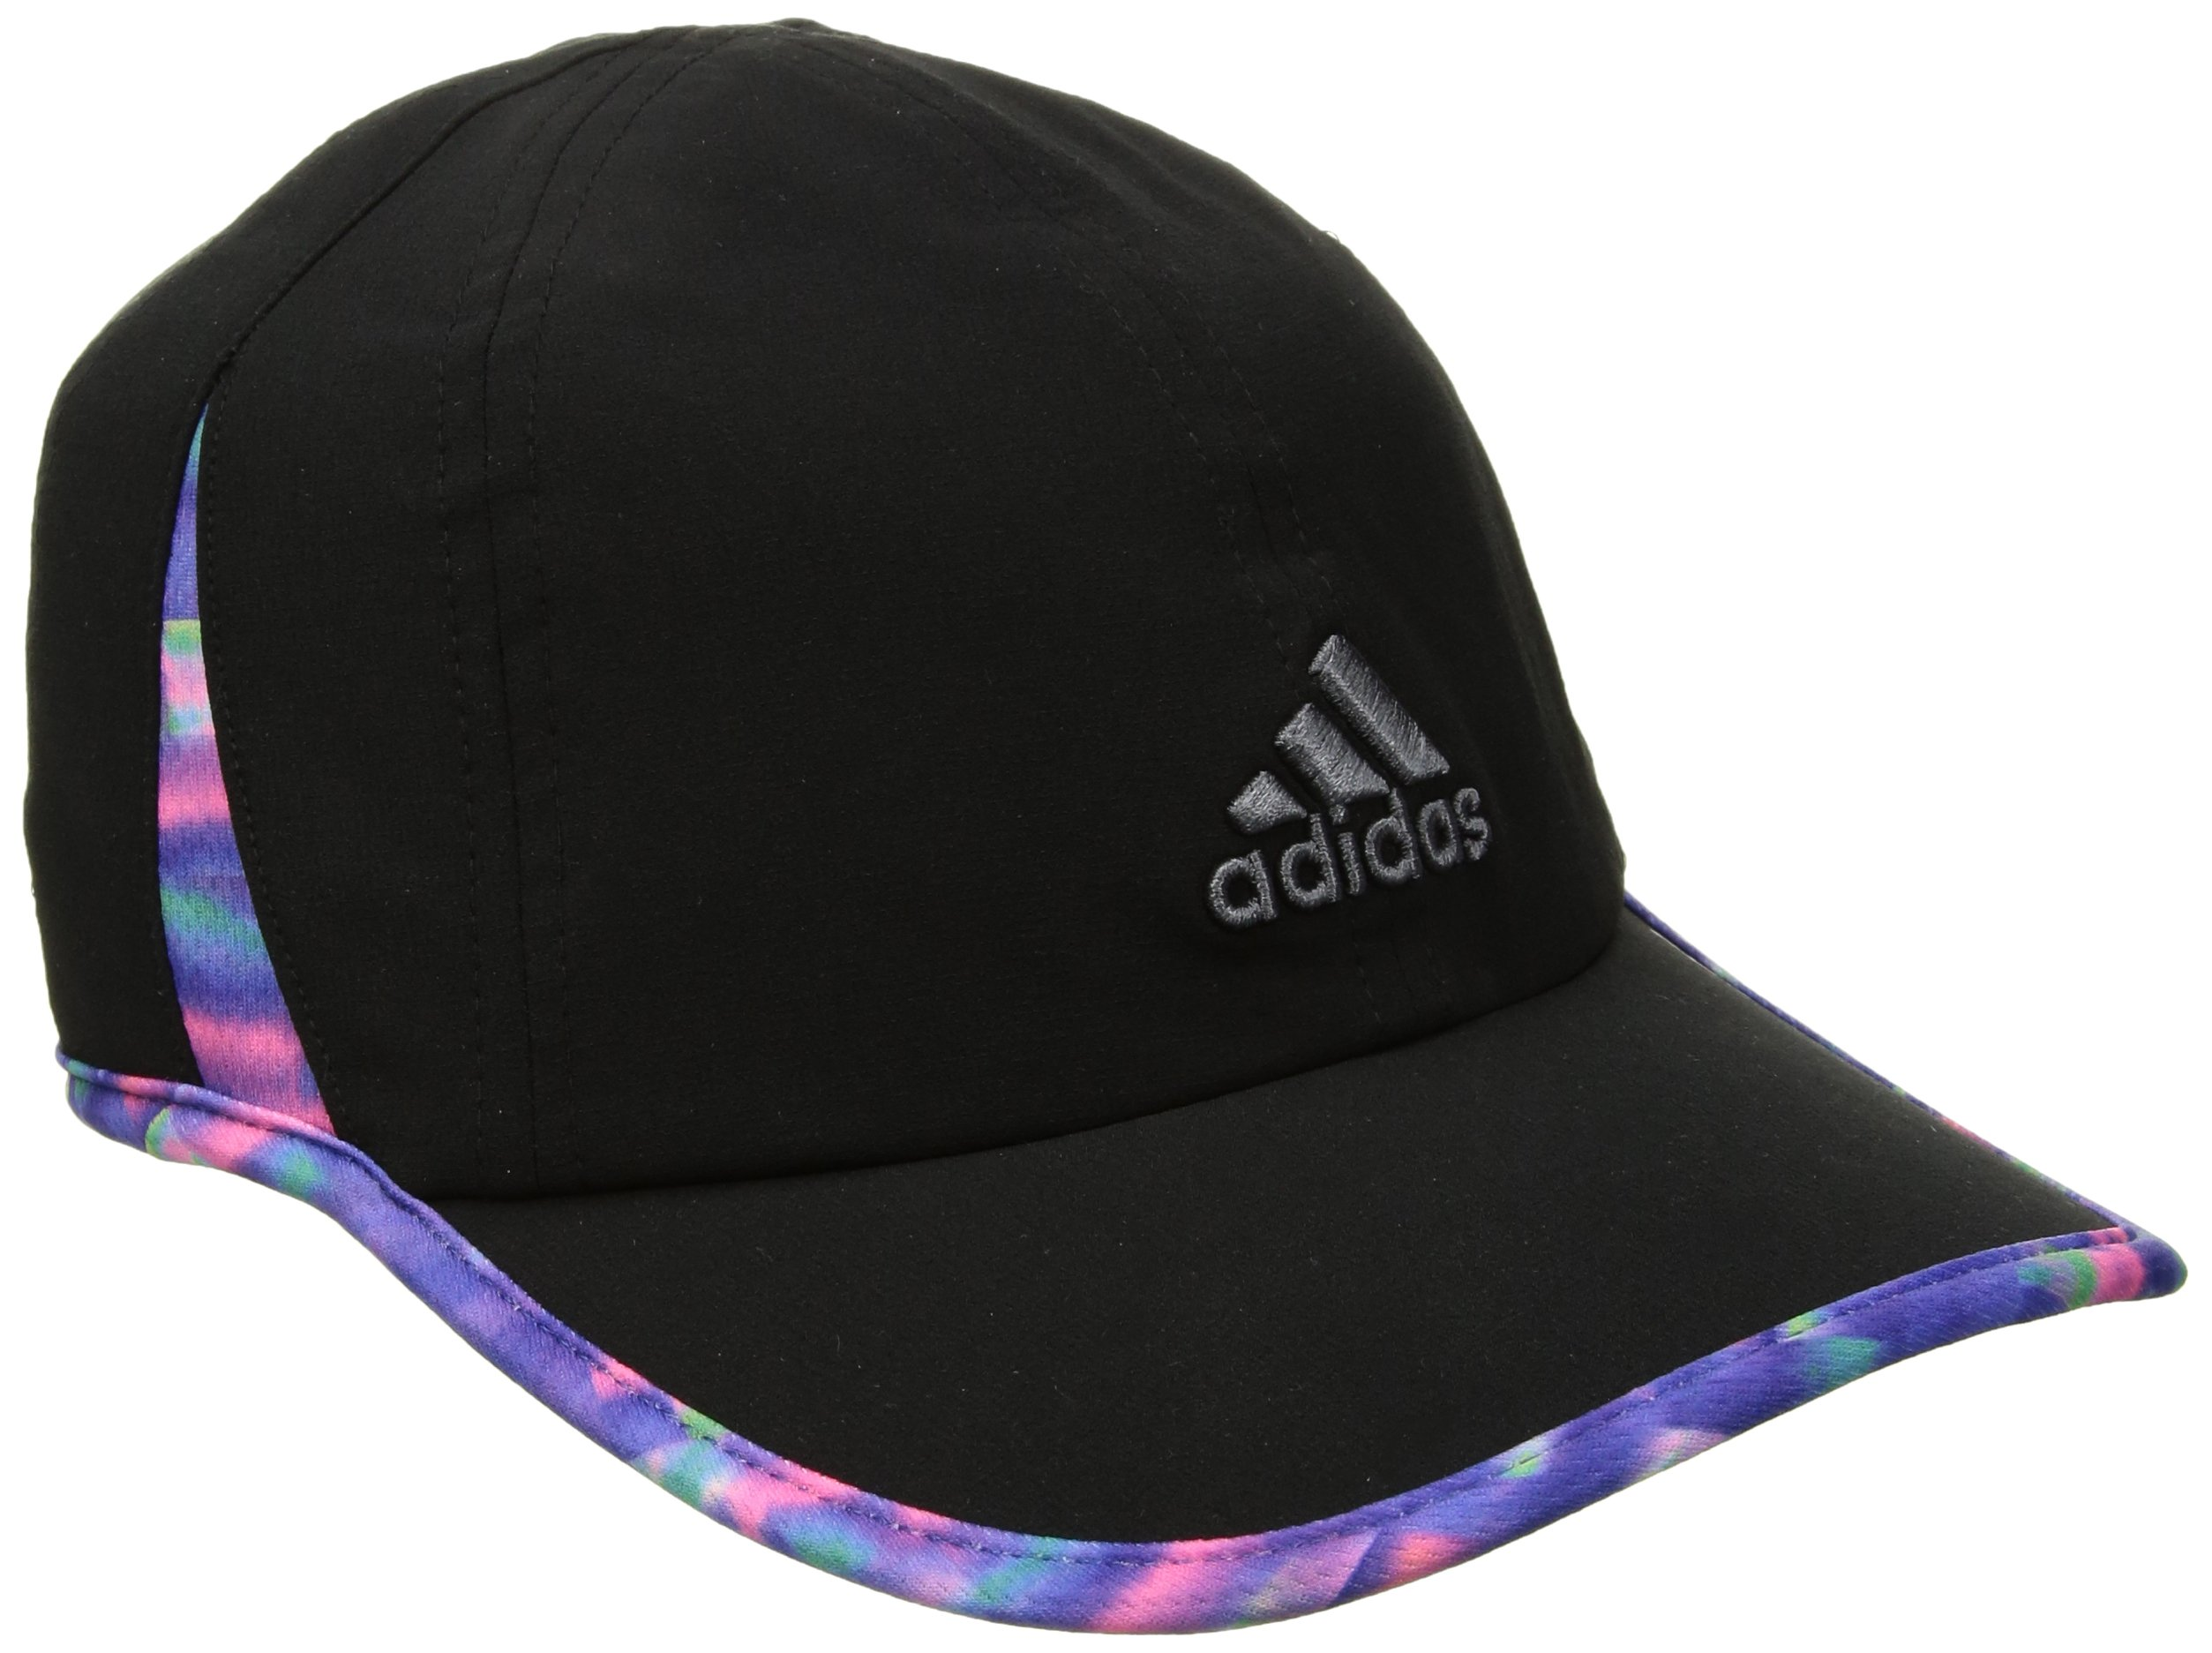 5e7c4af90 Galleon - Adidas Women's Adizero Relaxed Adjustable Performance Cap,  Black/Deepest Space Multi Jawbreaker Print, One Size